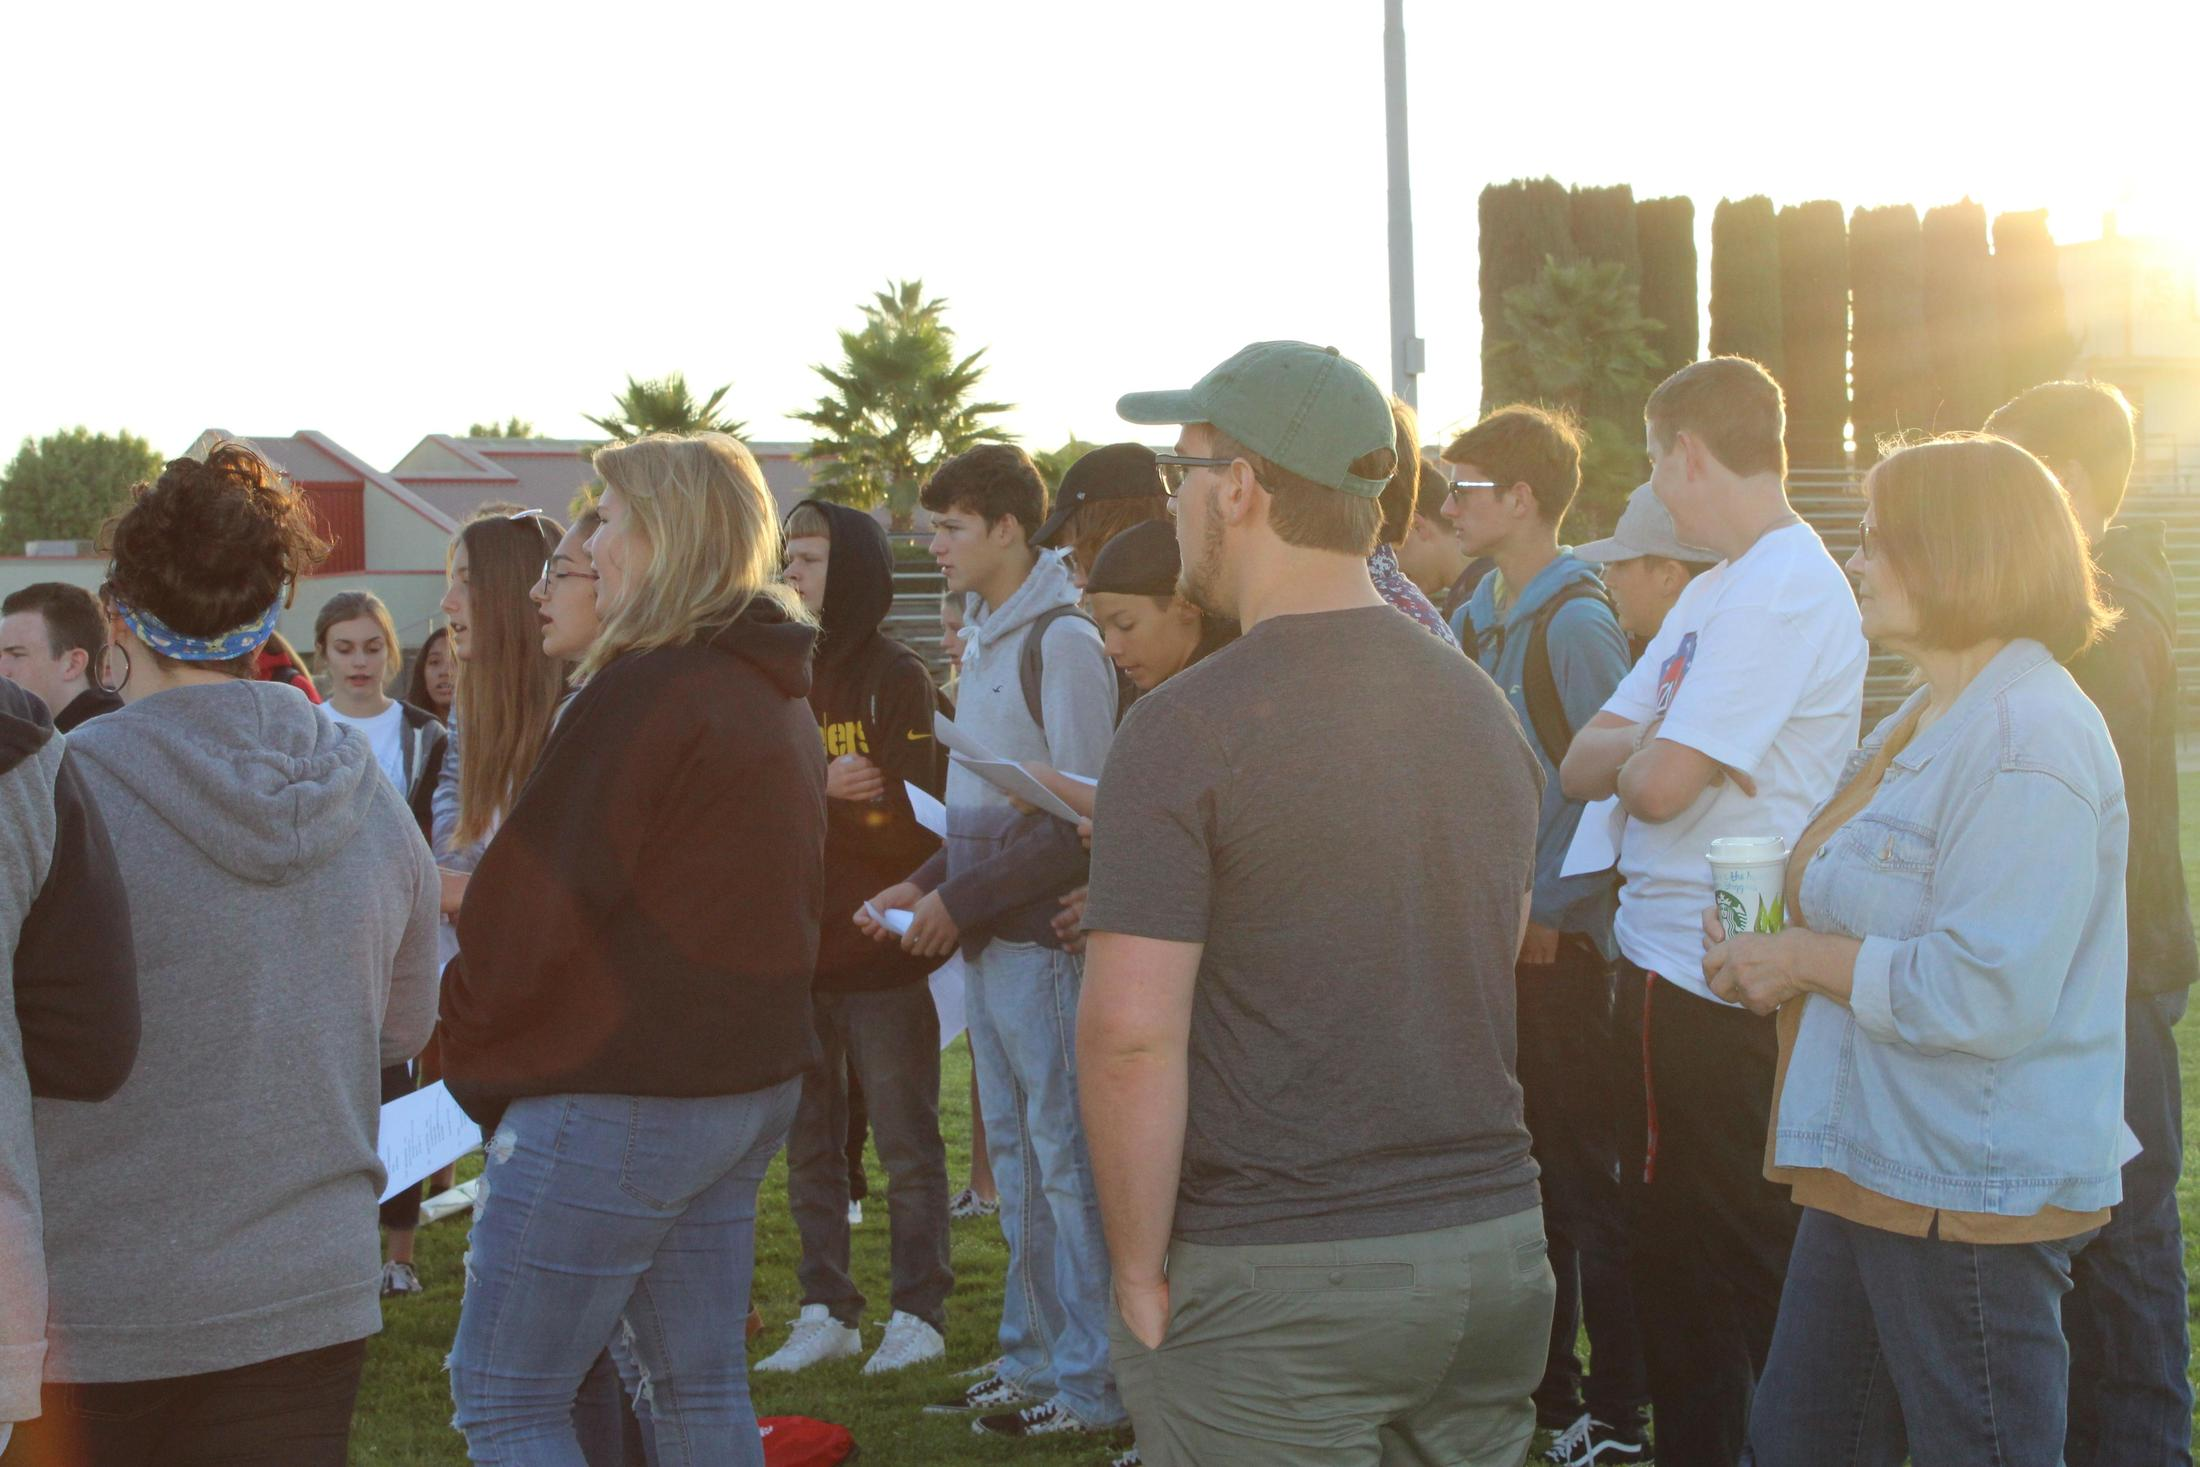 People enjoying the FCA activity 'At the Pole.'